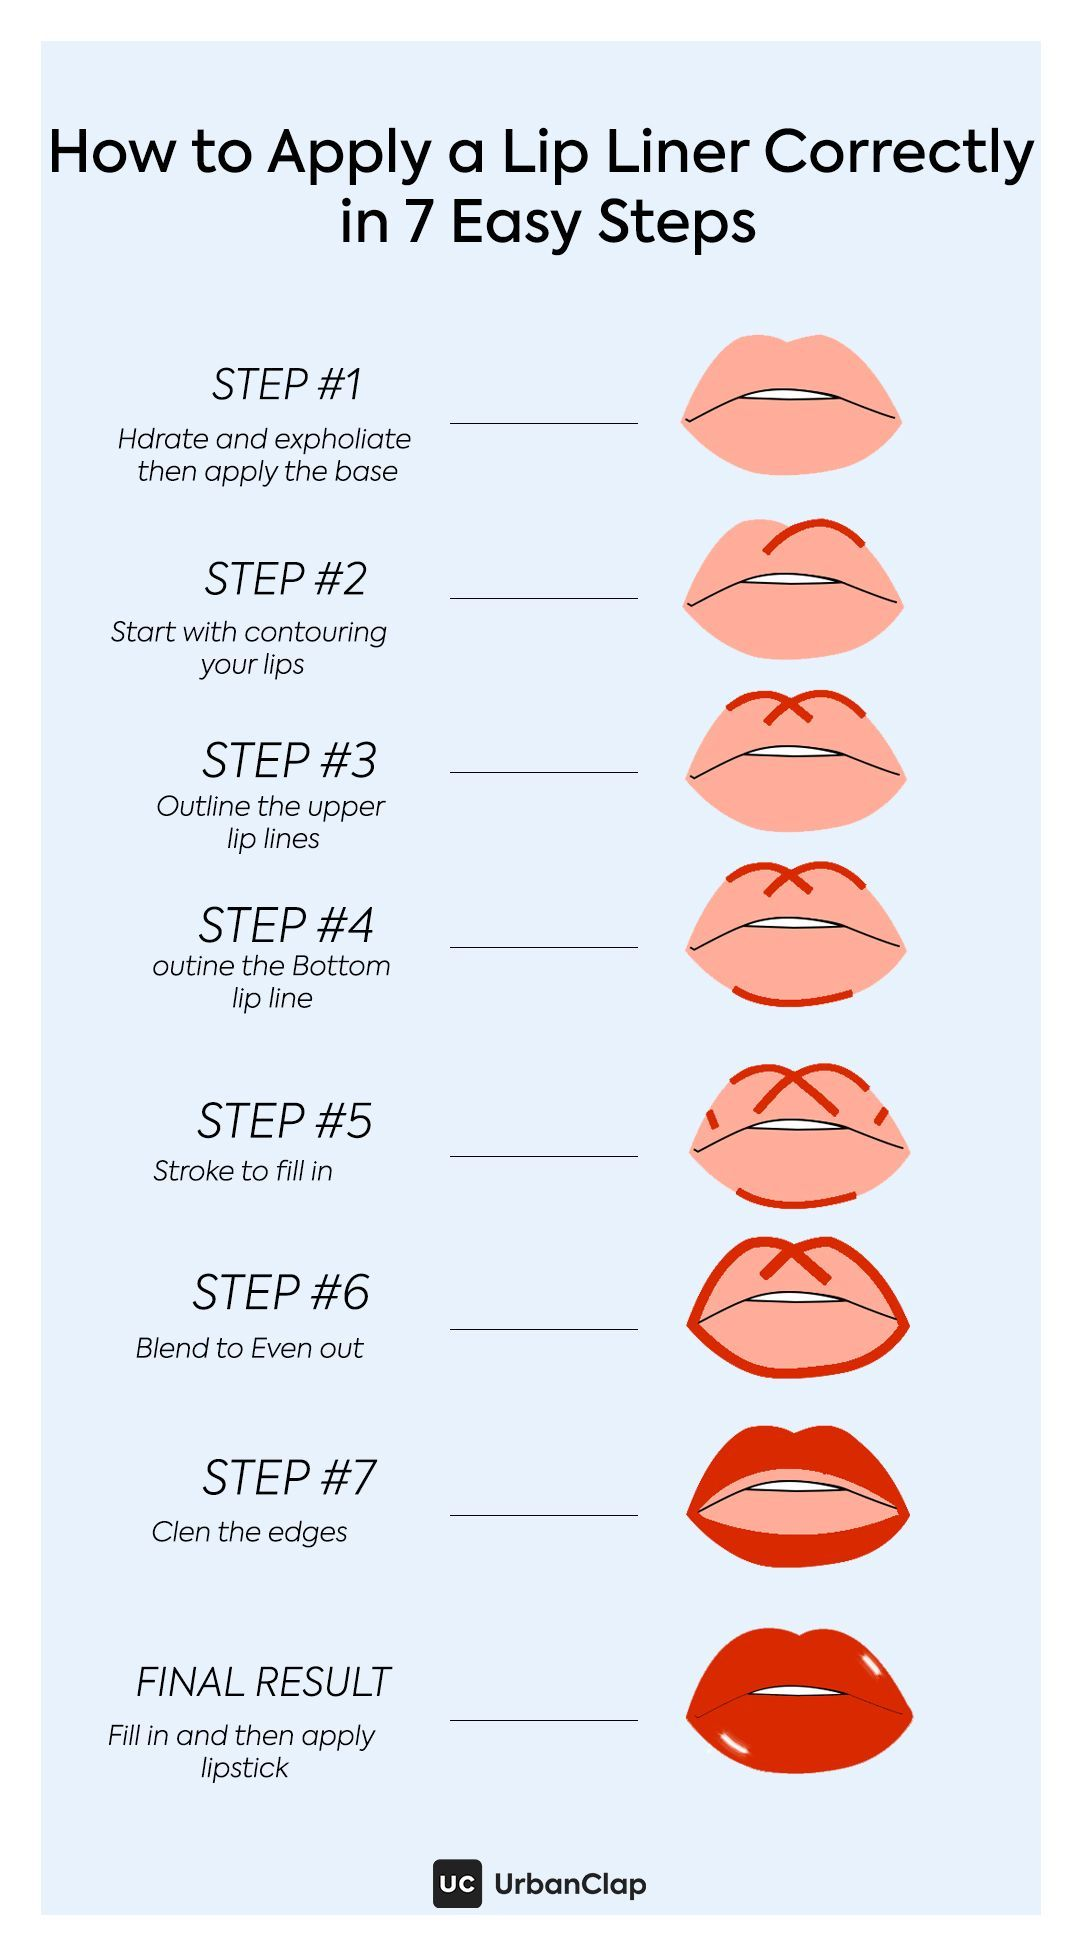 Makeup MustHaves How and Why You Should Use a Lip Liner